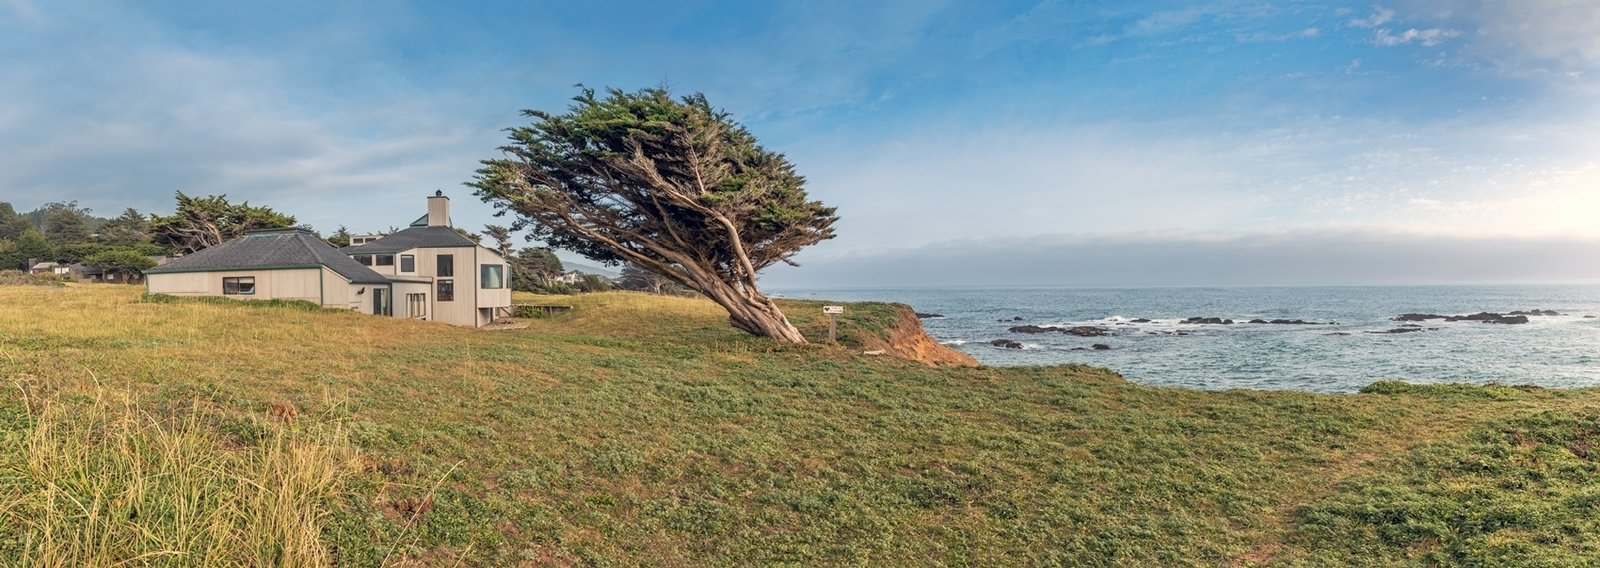 Sea Ranch master planner Lawrence Halprin envisioned an ecologically-minded community that wouldn't disturb the breathtaking natural surroundings of the coast. Charles Moore's design nestles into the land.  Photo 12 of 12 in Settle in the Celebrated Sea Ranch For Under $2.9M